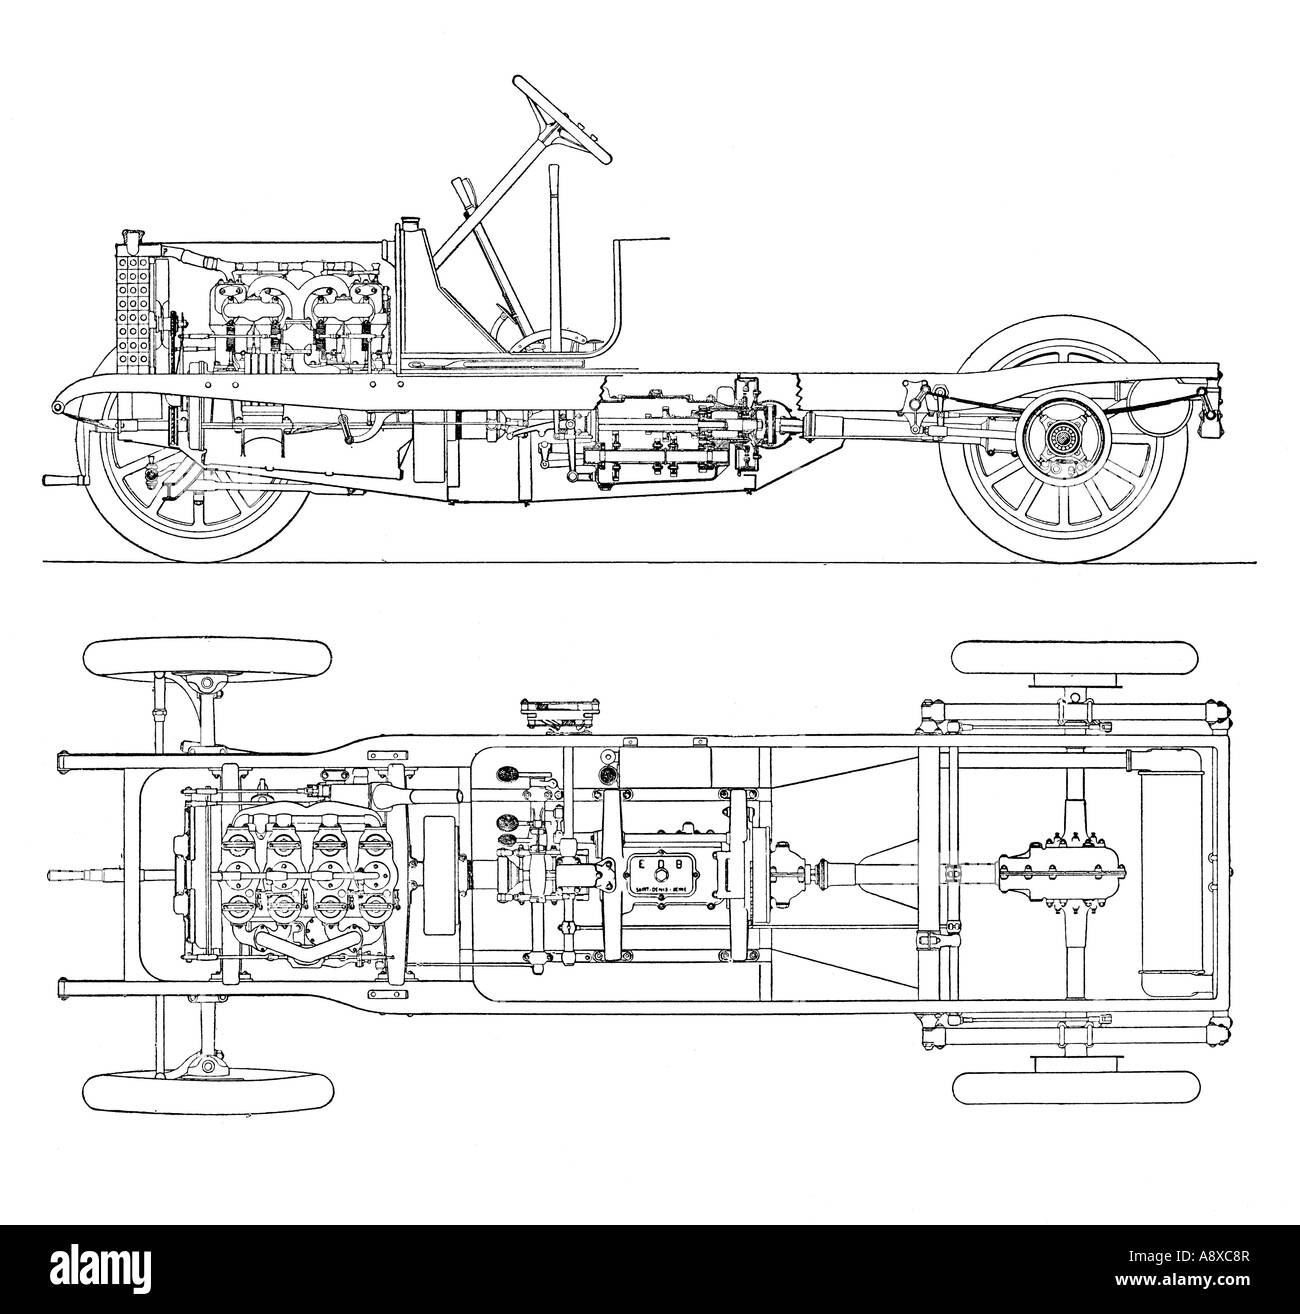 hight resolution of diagram of four cylinder petrol engine car chassis with cardan shaft drive stock image